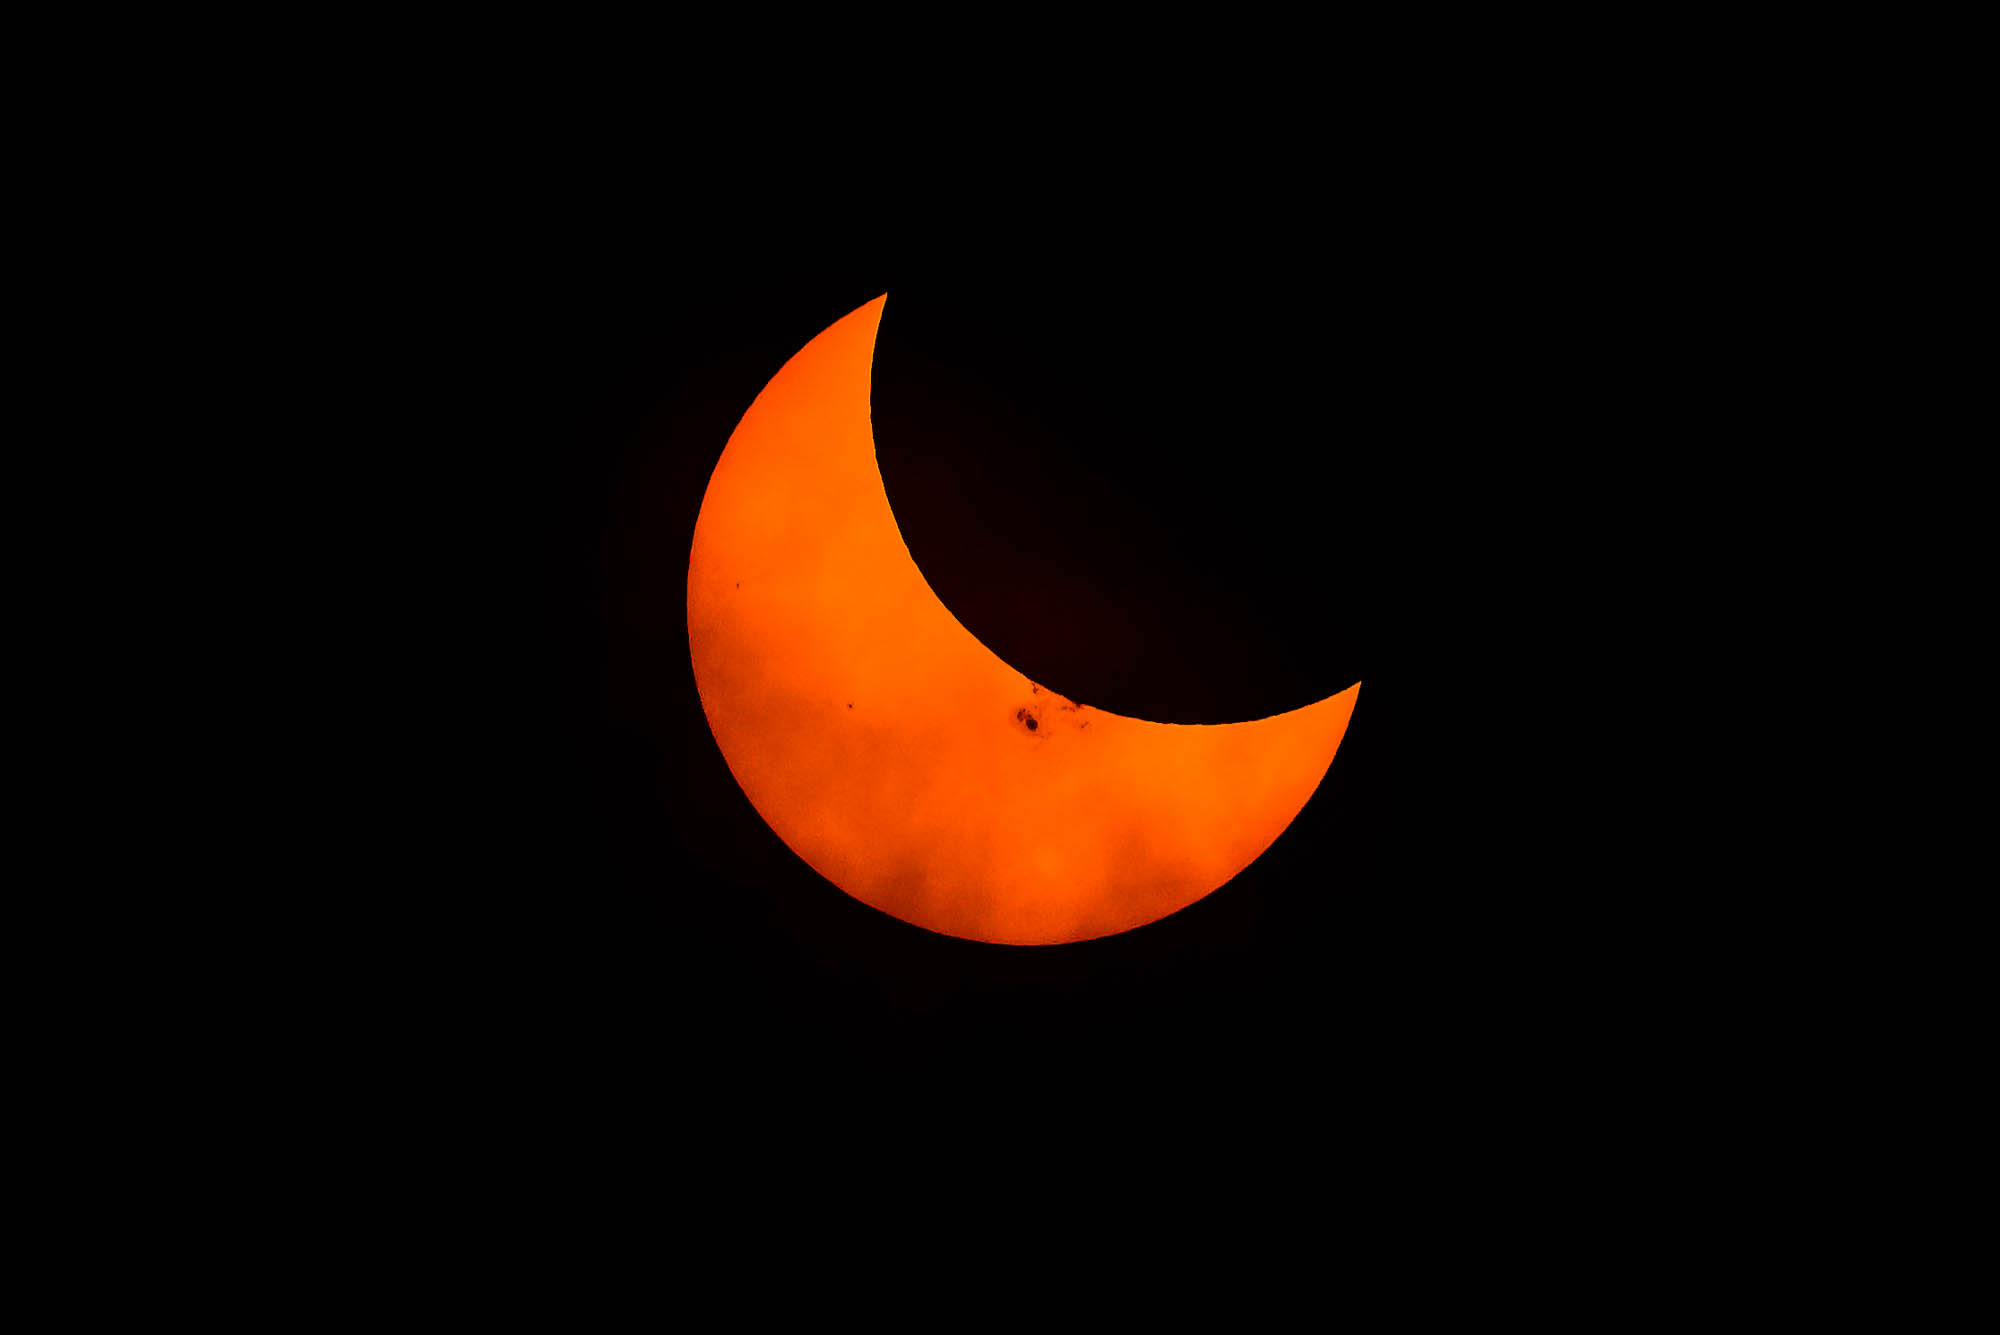 October 23, 2014 partial solar eclipse from Vancouver, Canada. Image shows large sunspot cluster.